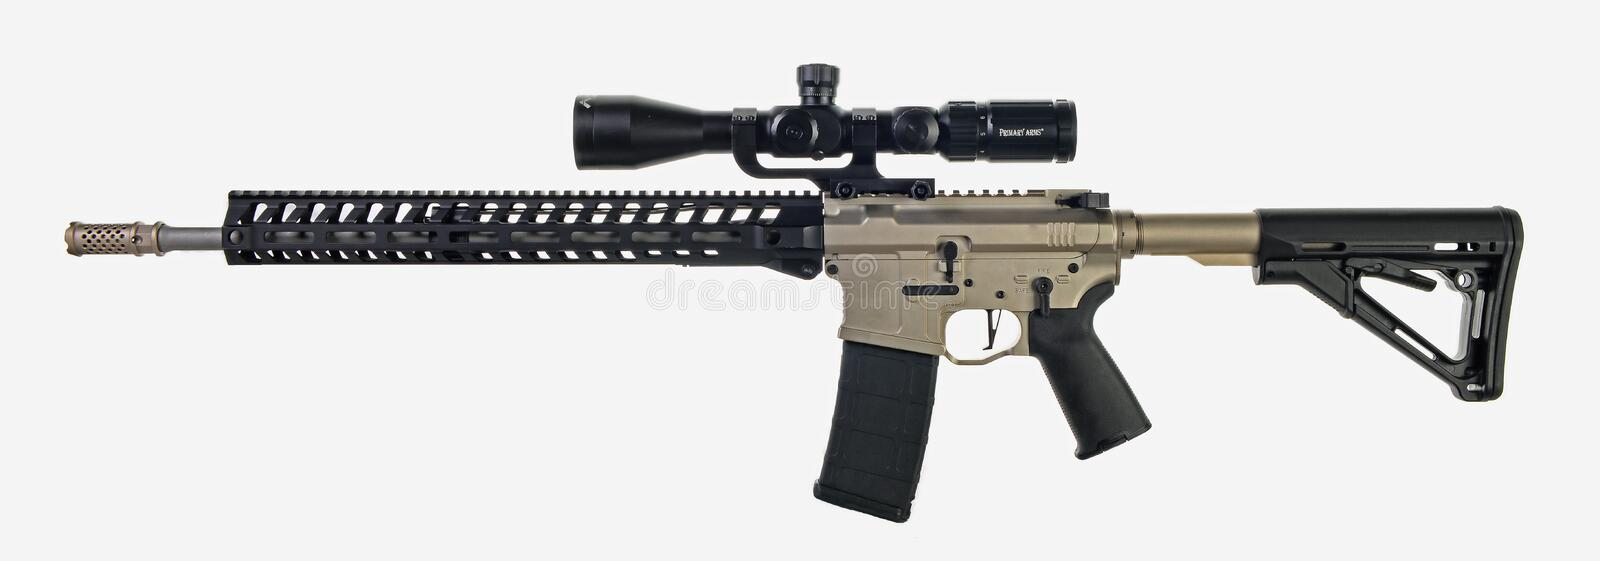 AR15 with scope, 30rd mag and collapsible stock stock image